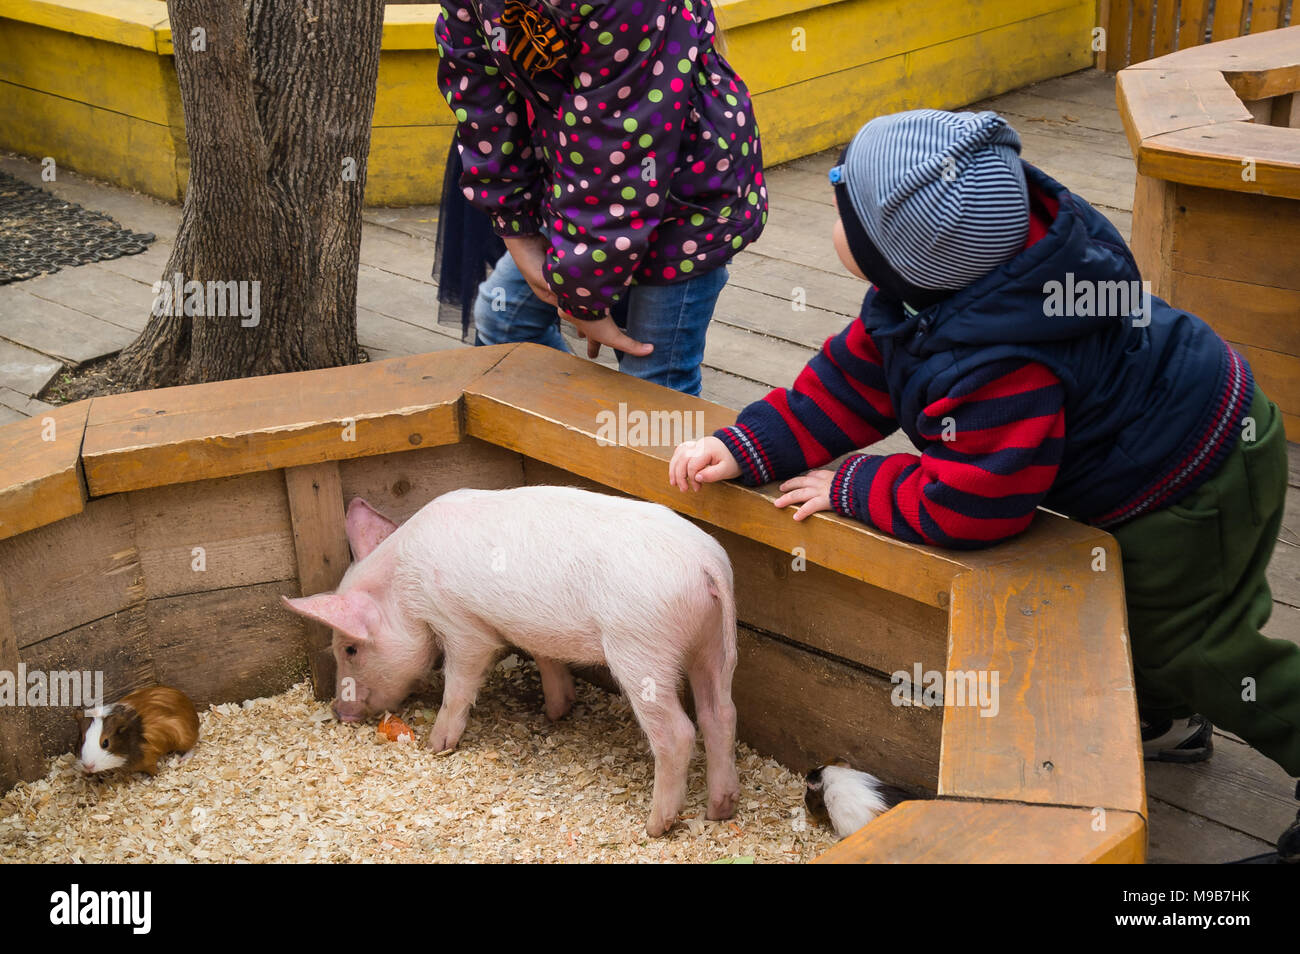 Children toddler boy and girl at petting zoo with little piggy. Child and farm animals - Stock Image